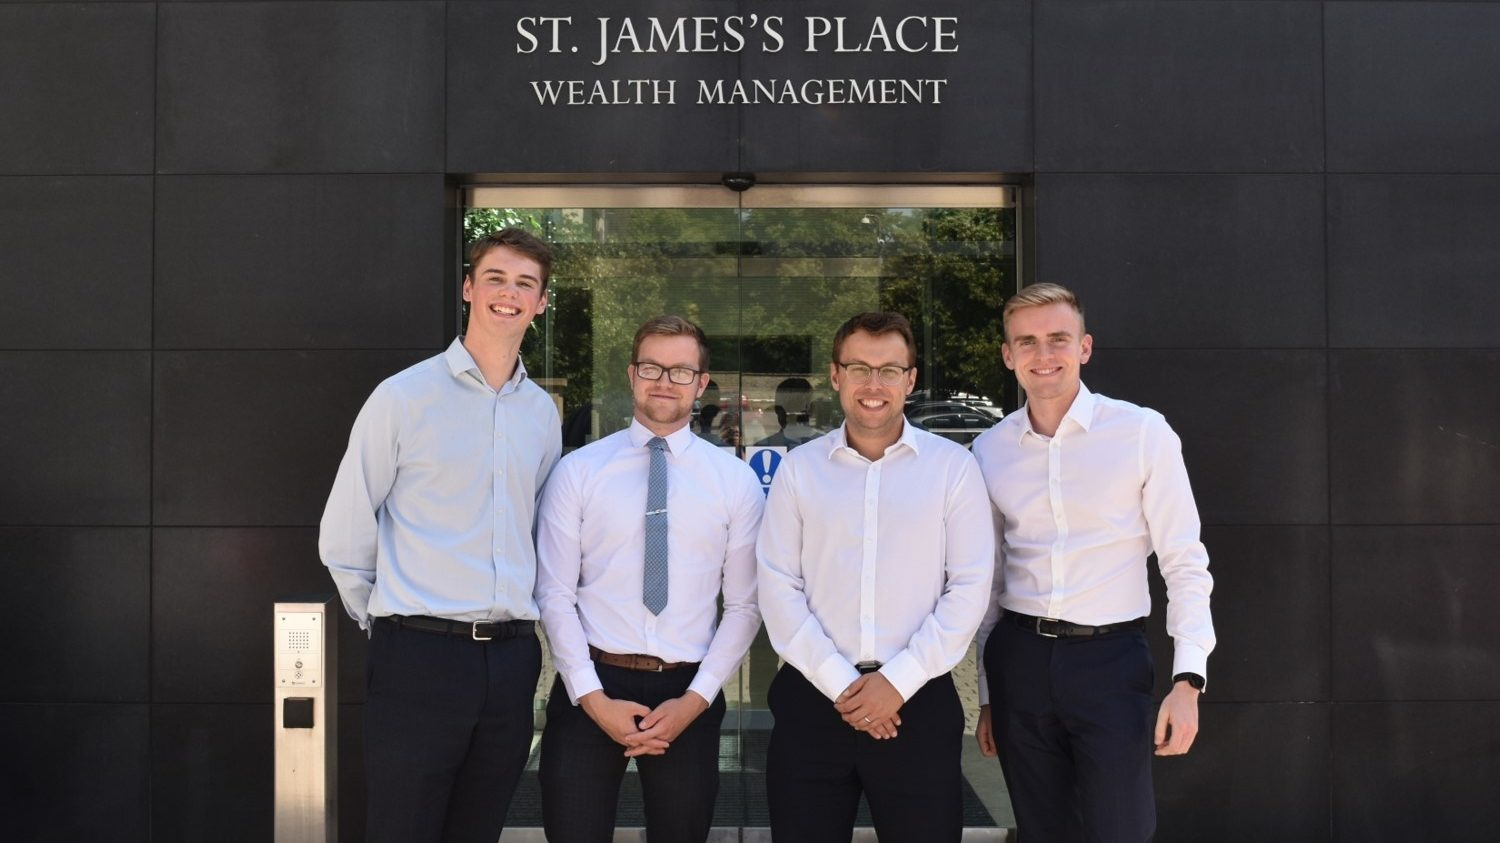 4 professional looking men stand outside of a building that says St James's Place Wealth Management